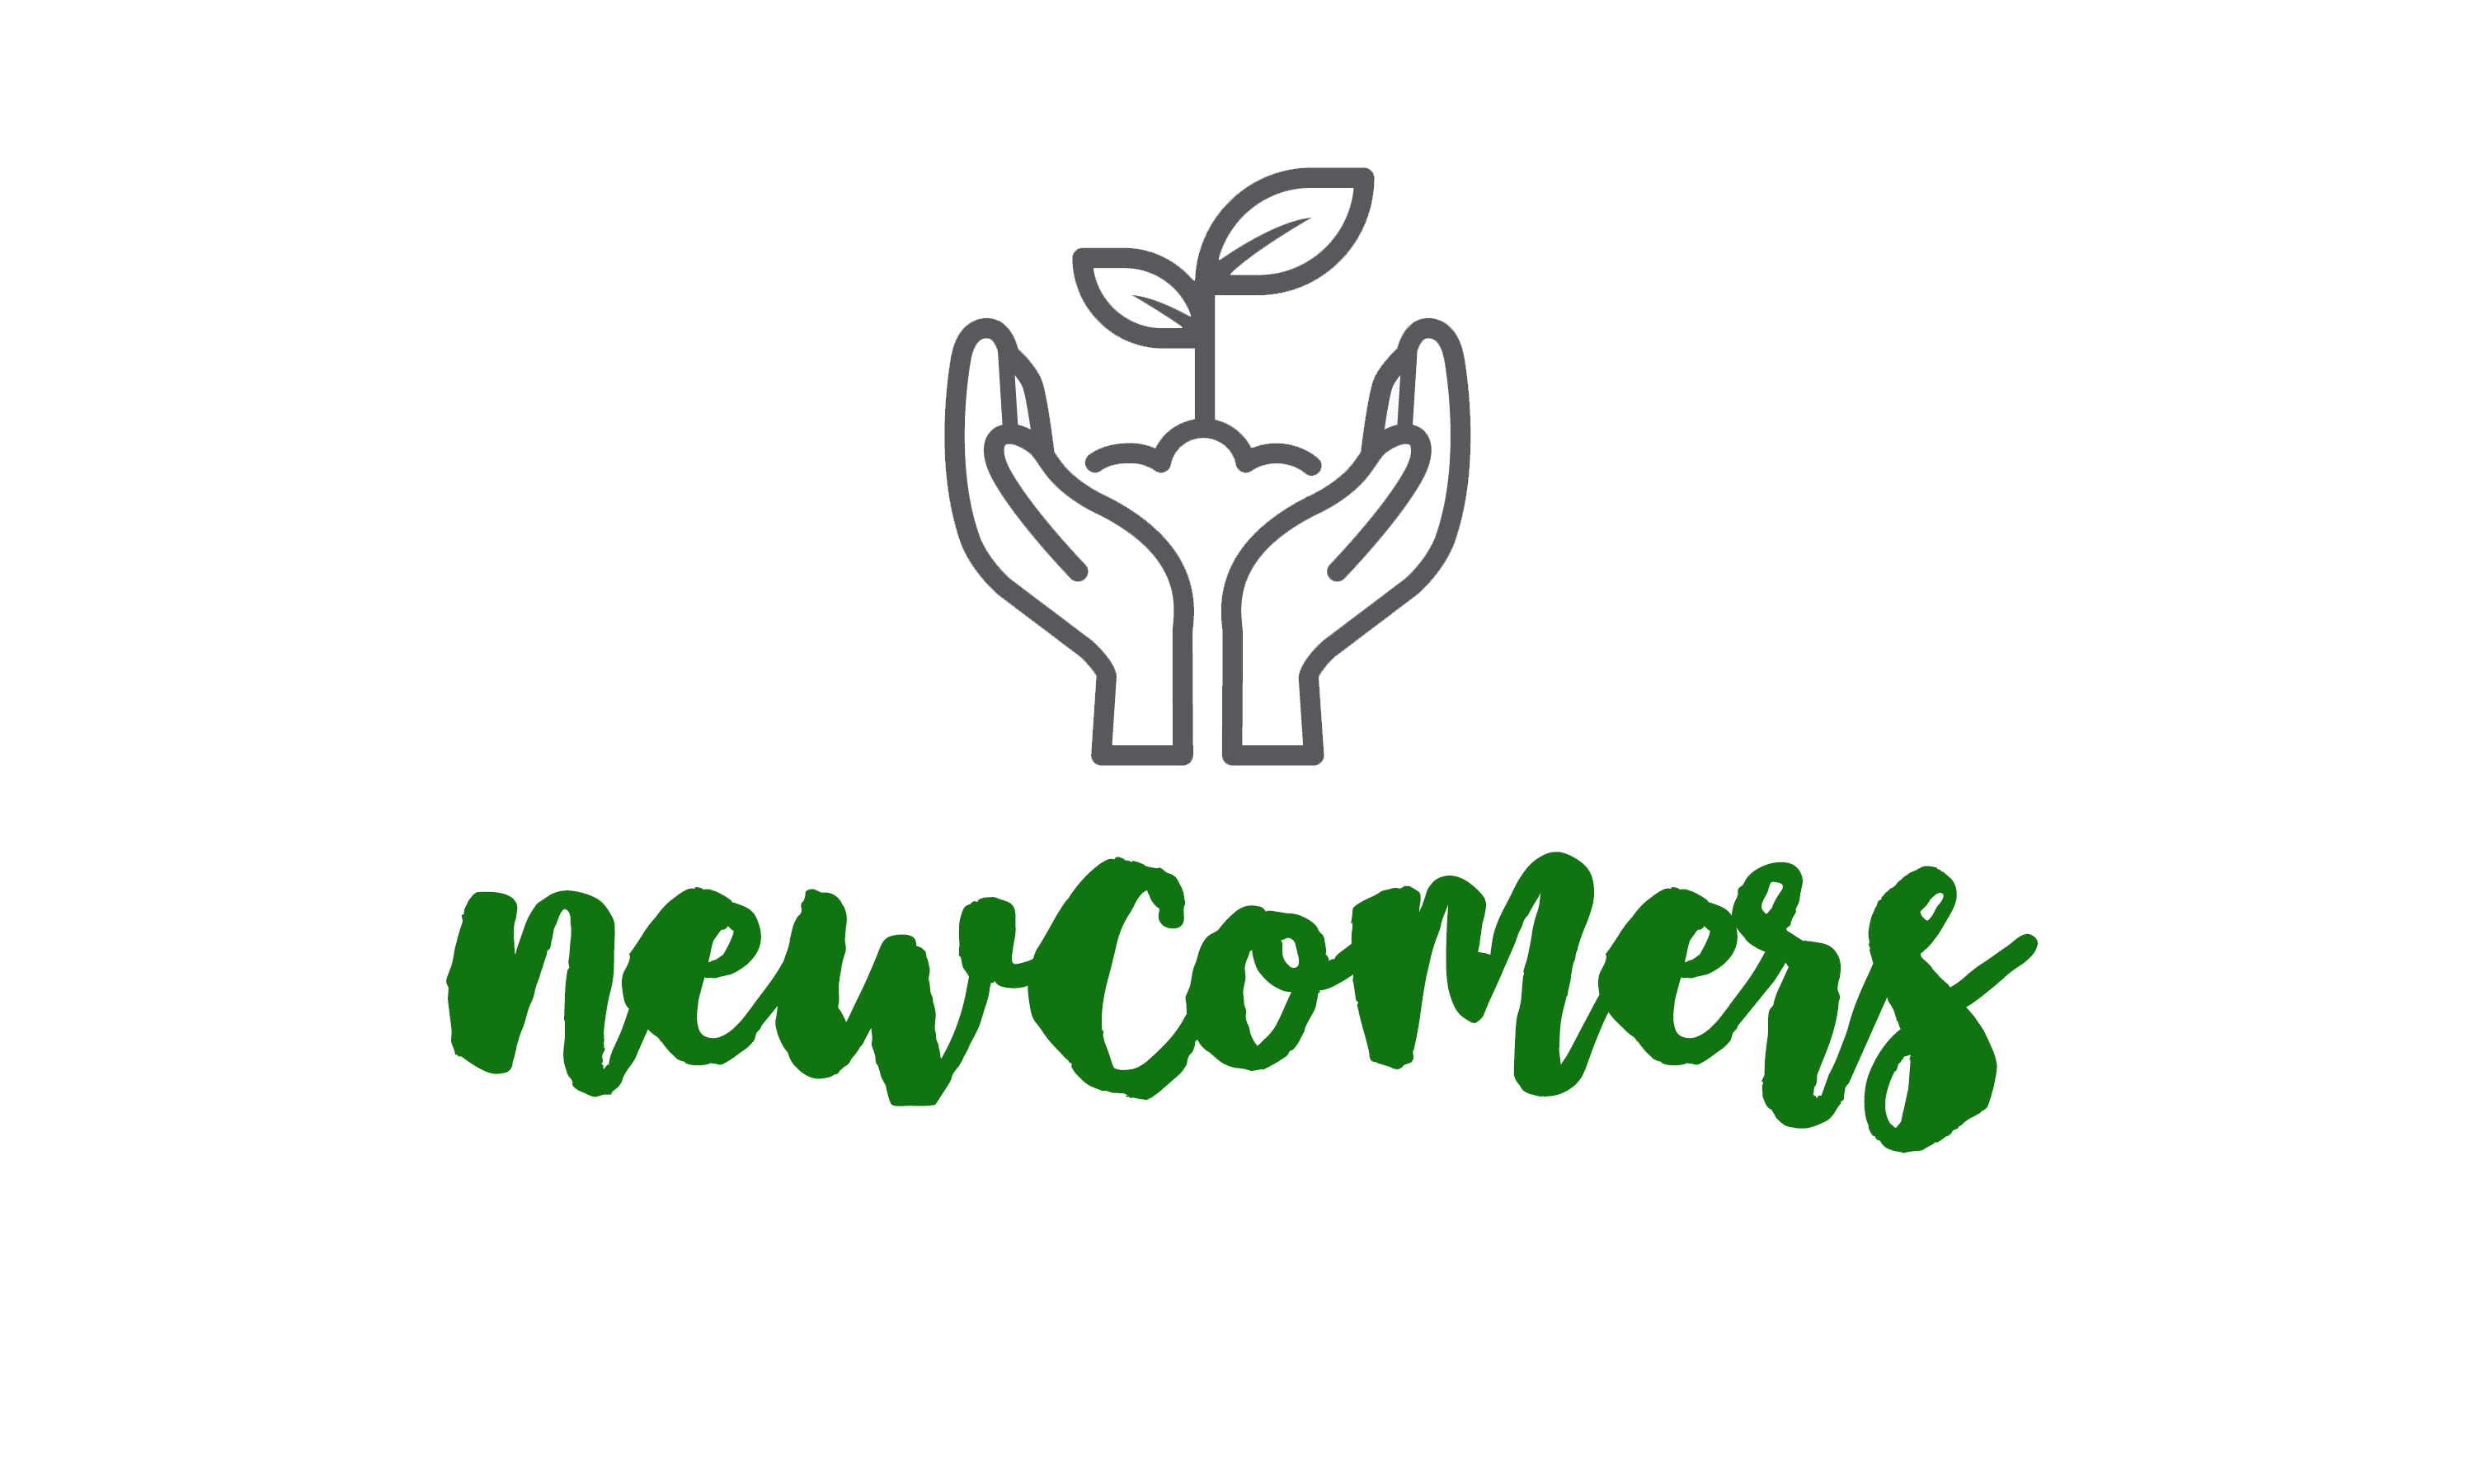 Newcomers logo full color